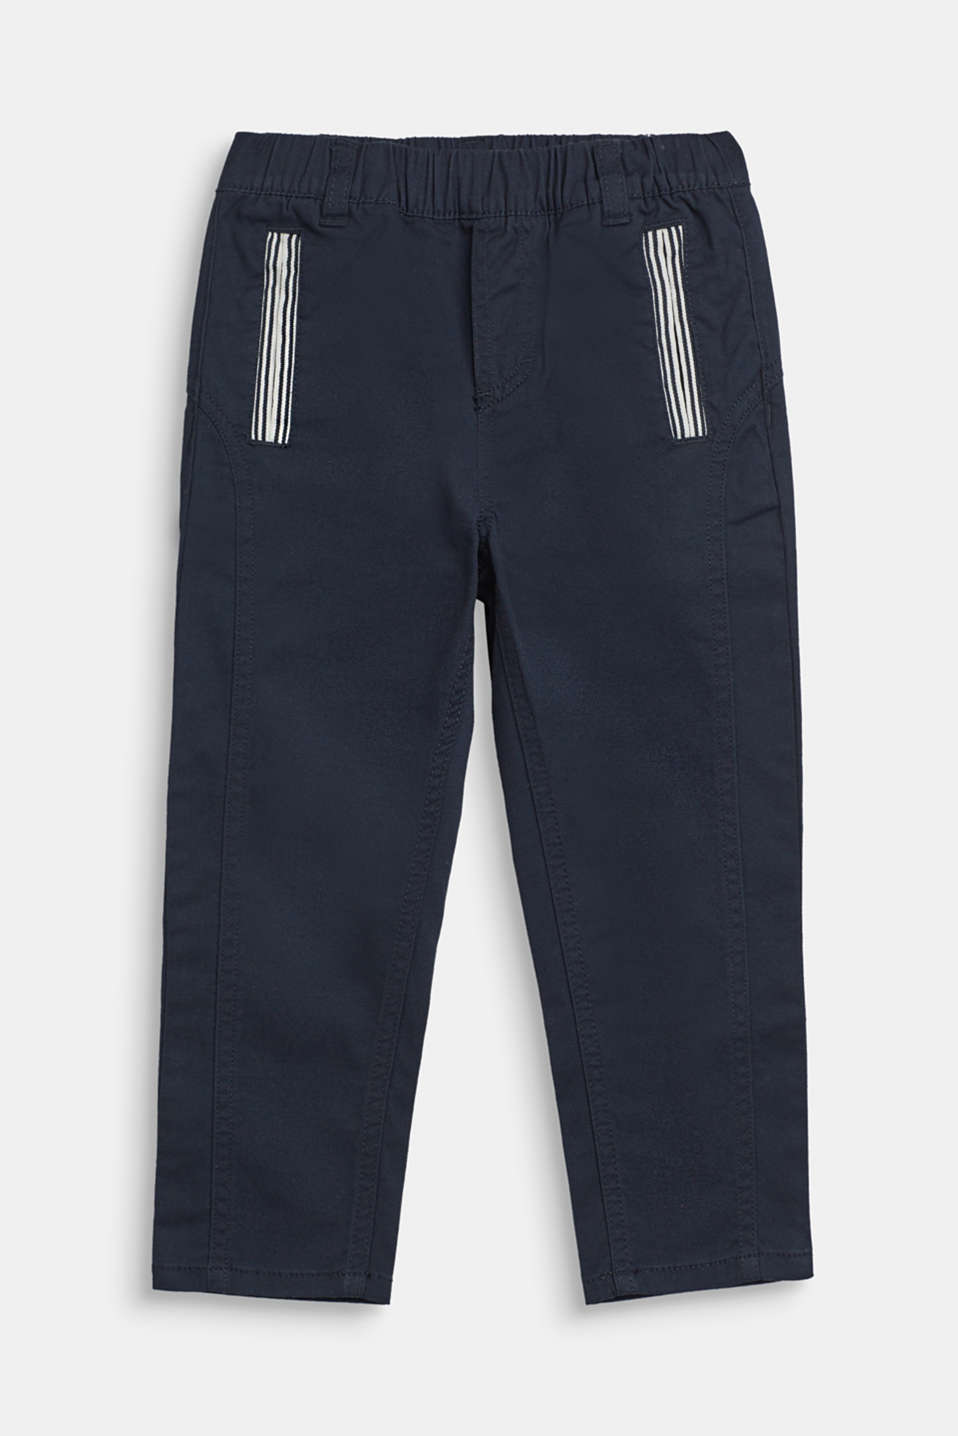 Esprit - Loose stretch cotton trousers with an elasticated waistband